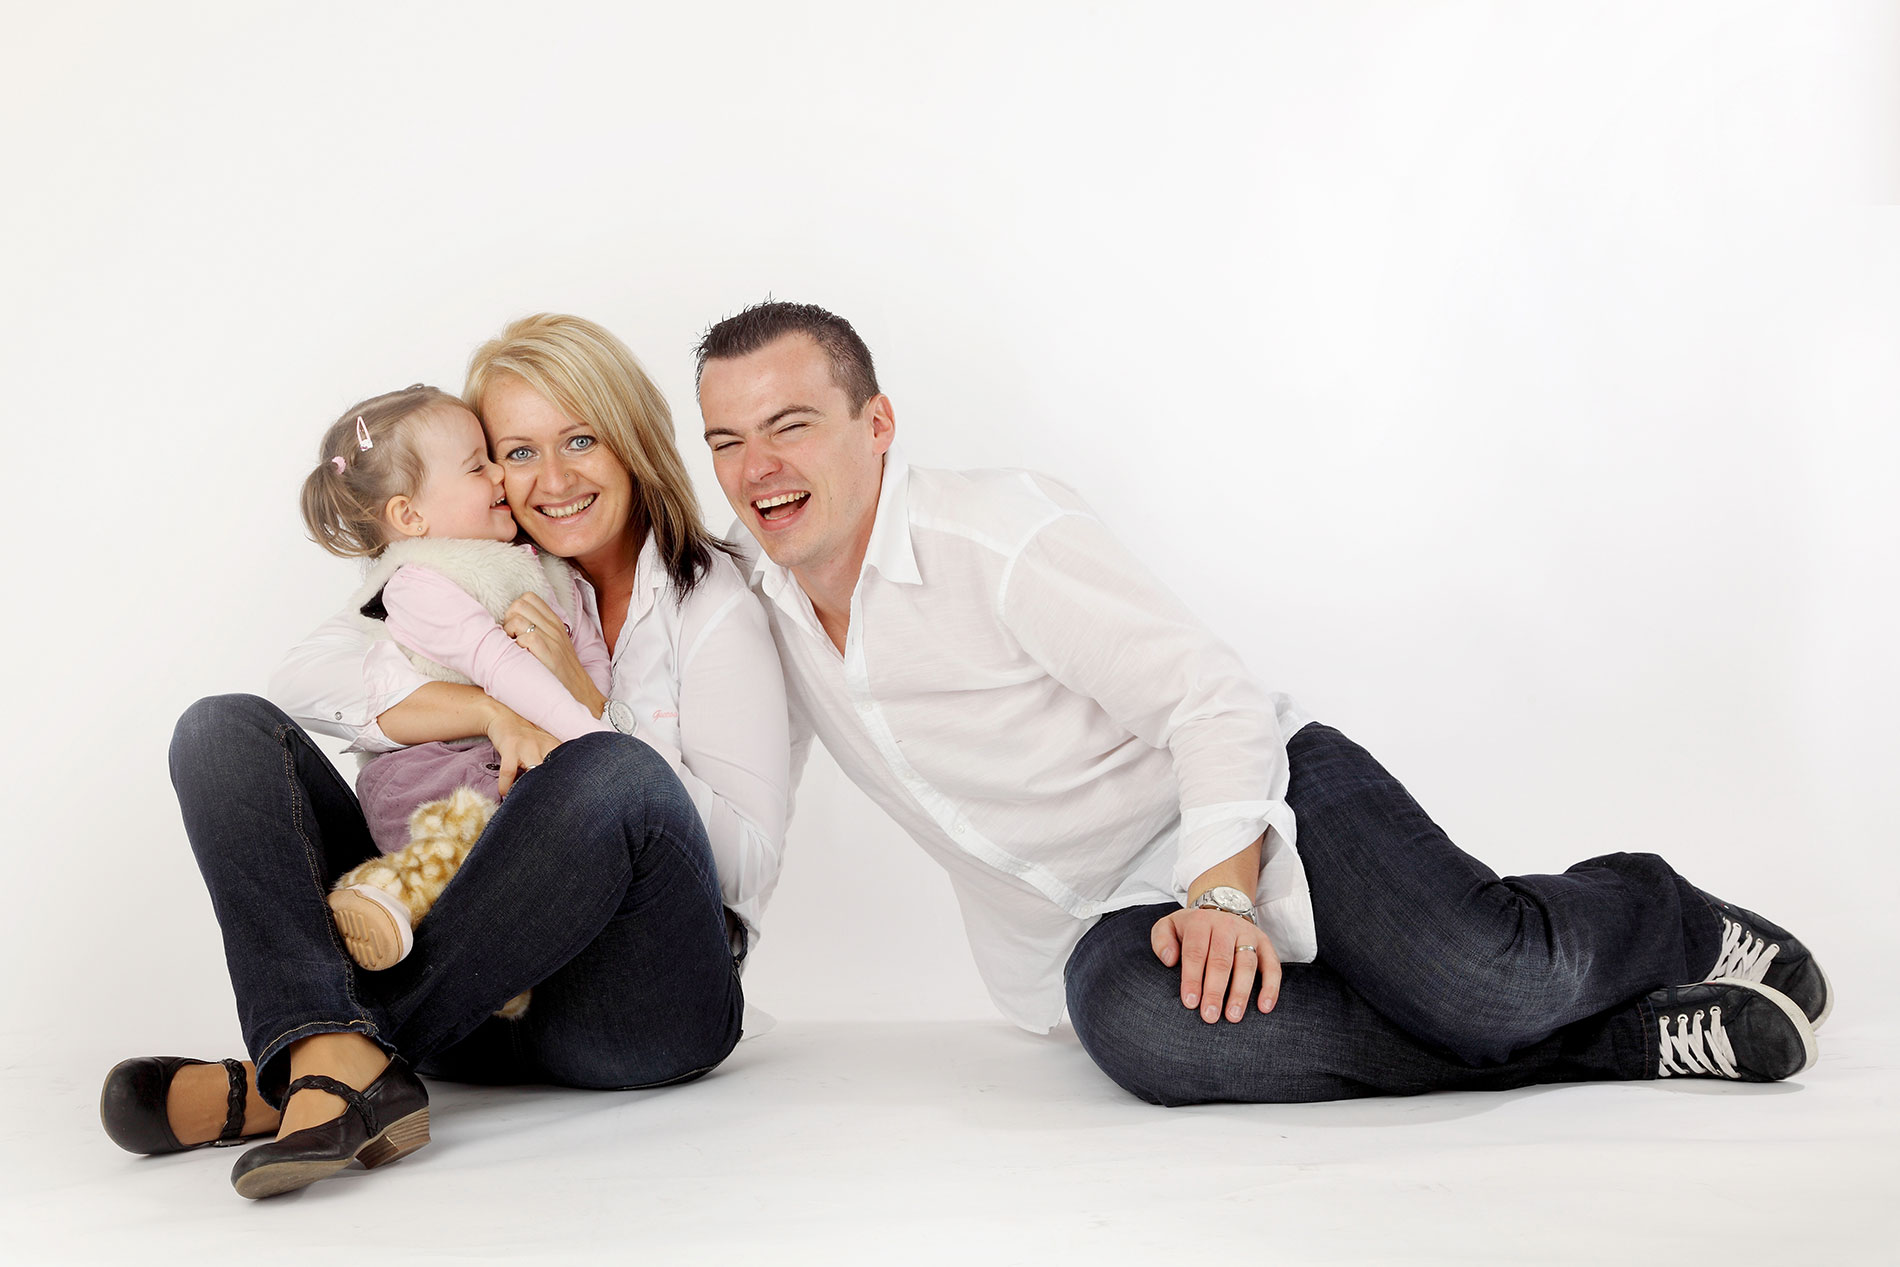 Familien Fotoshooting